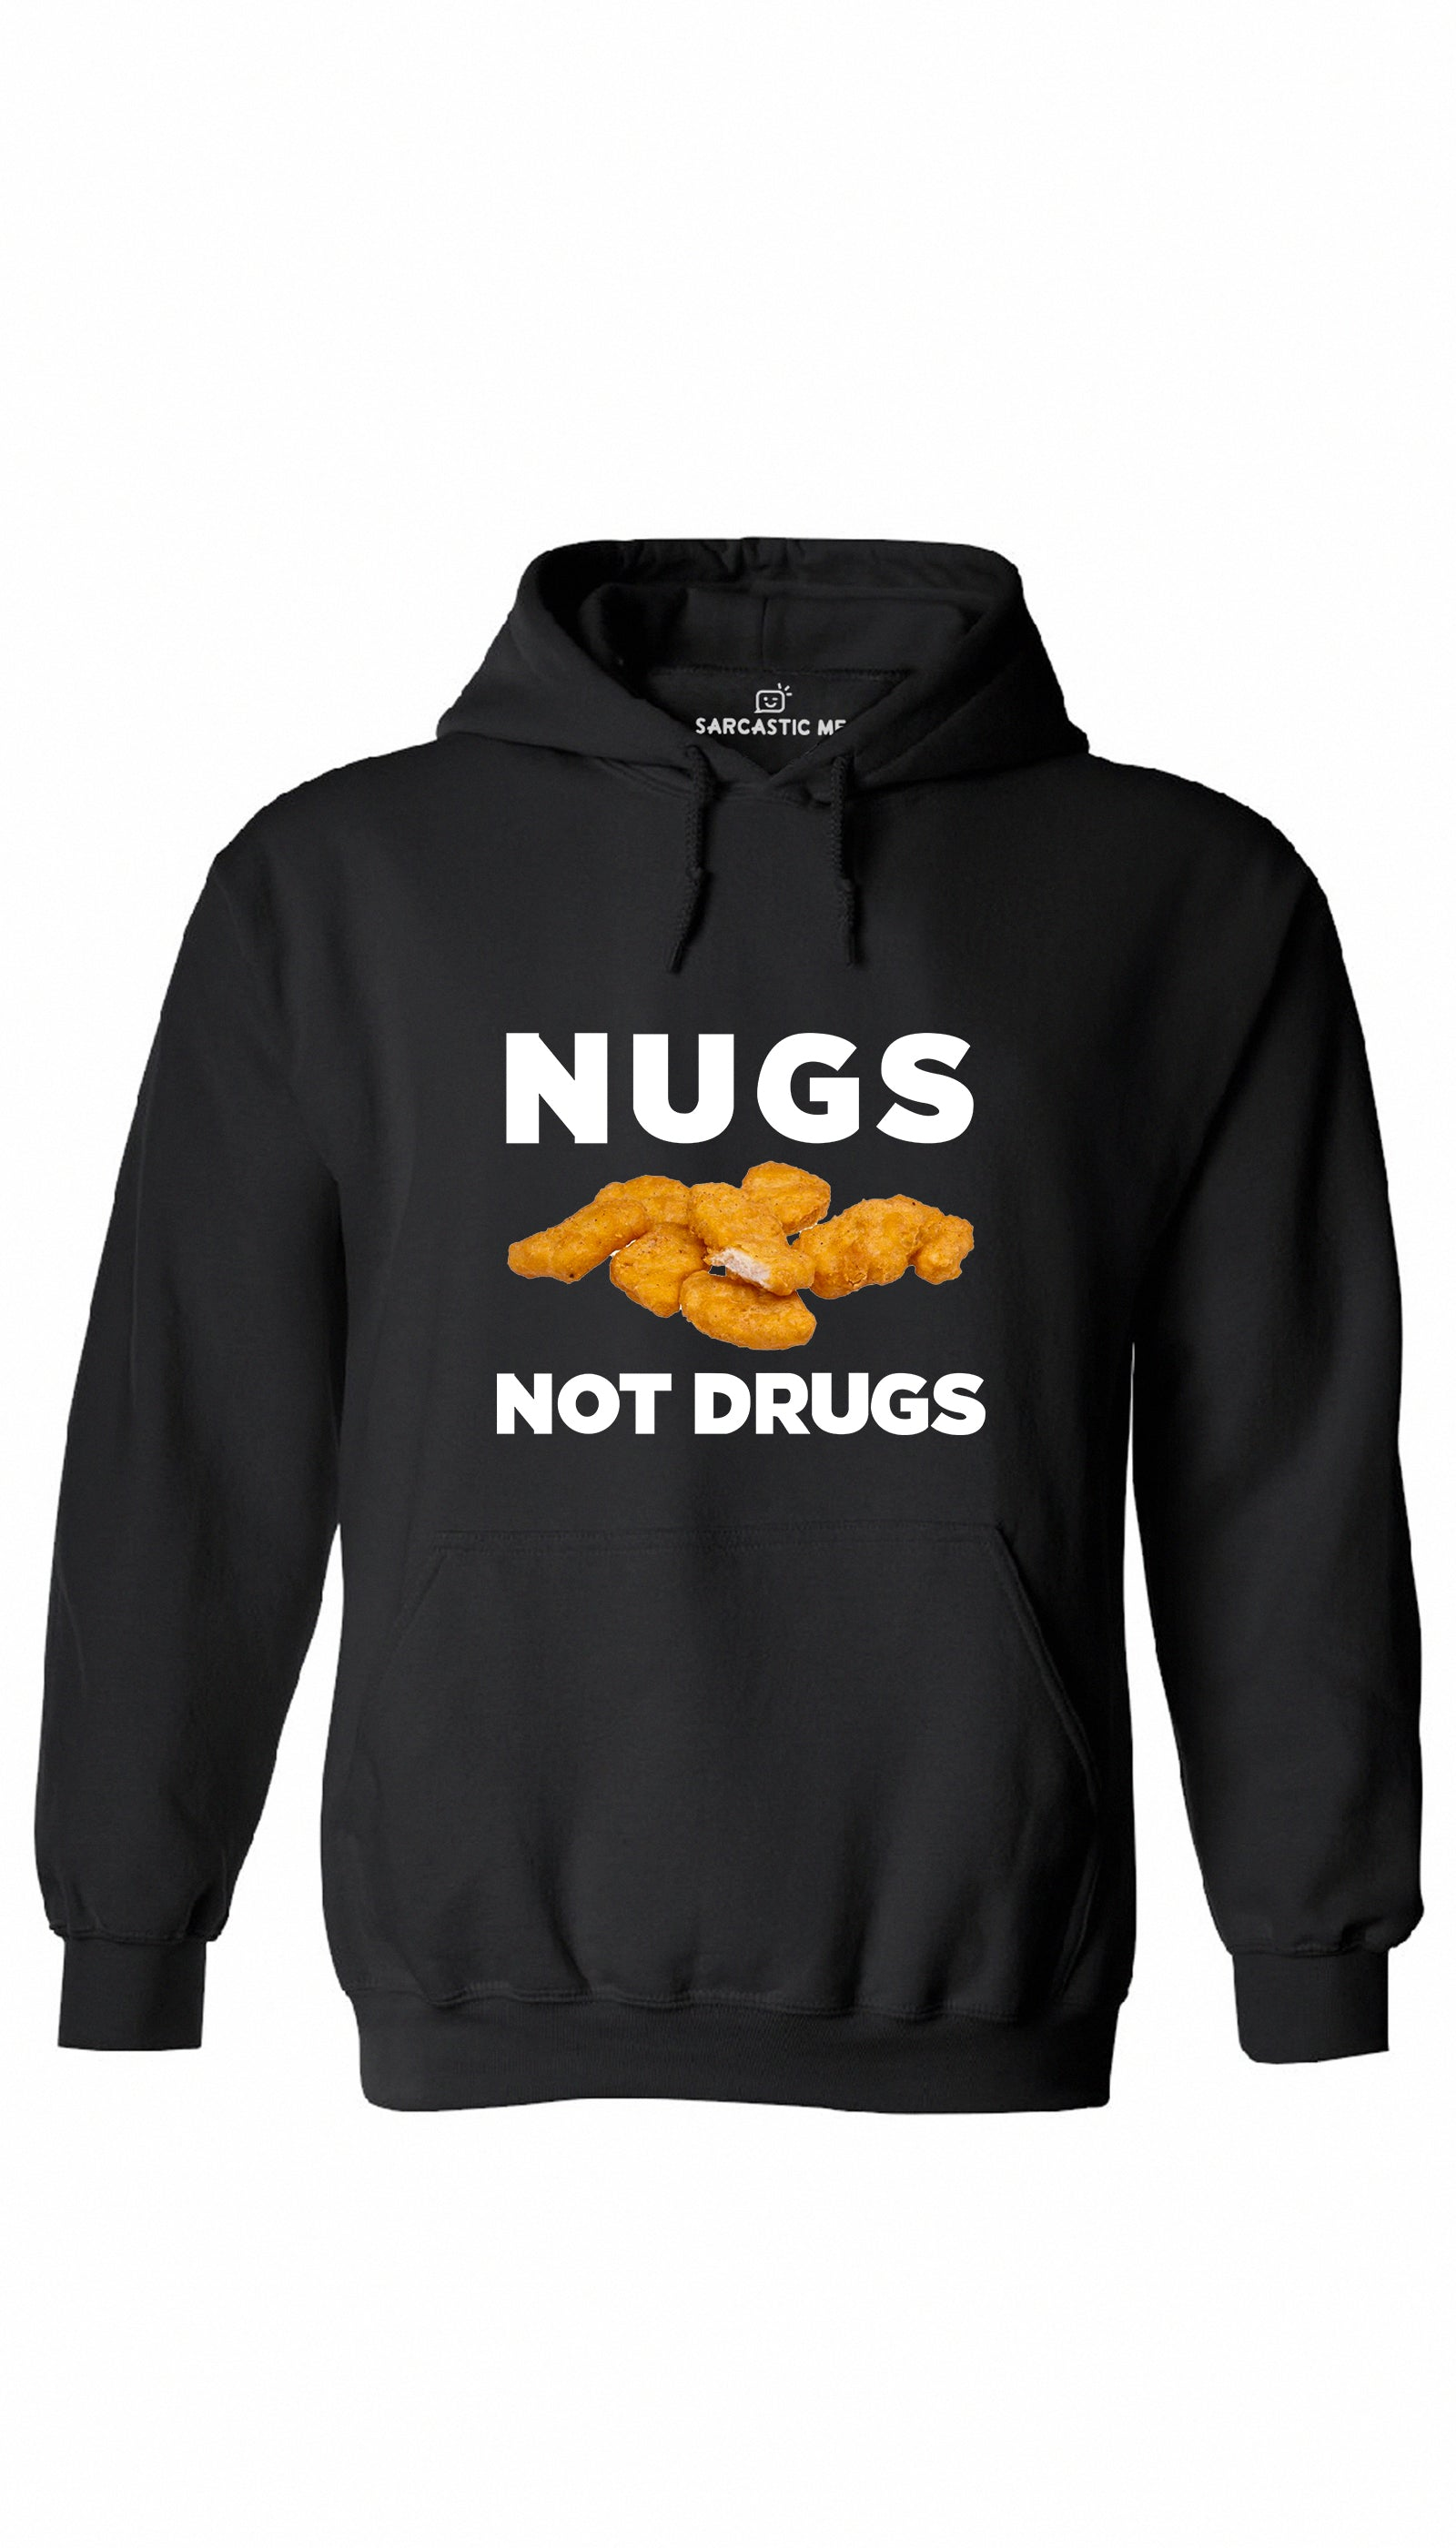 Nugs Not Drugs Black Hoodie | Sarcastic ME